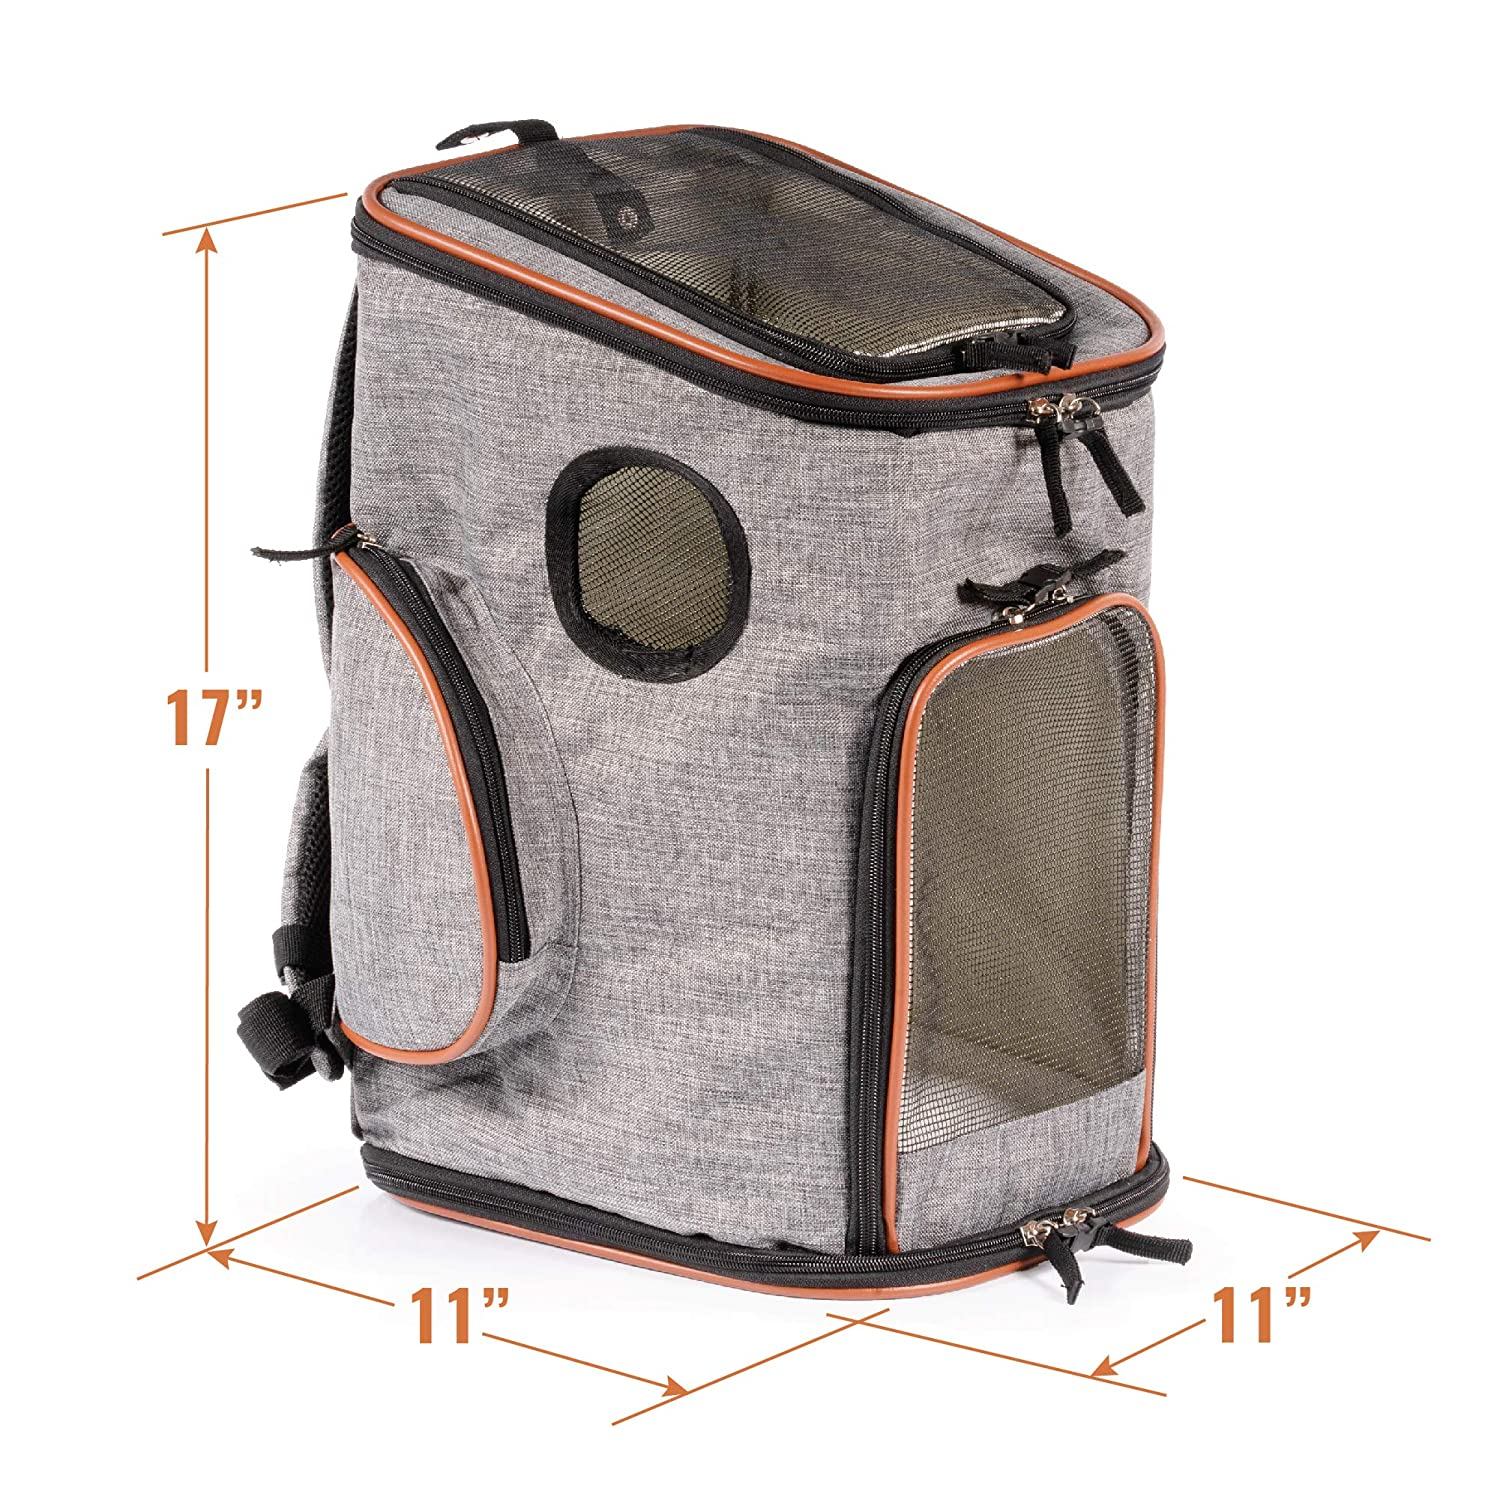 Pawfect Pets Soft-Sided Pet Carrier Backpack for Small Dogs and Cats Airline-Approved, Designed for Travel, Hiking, Walking Outdoor Use